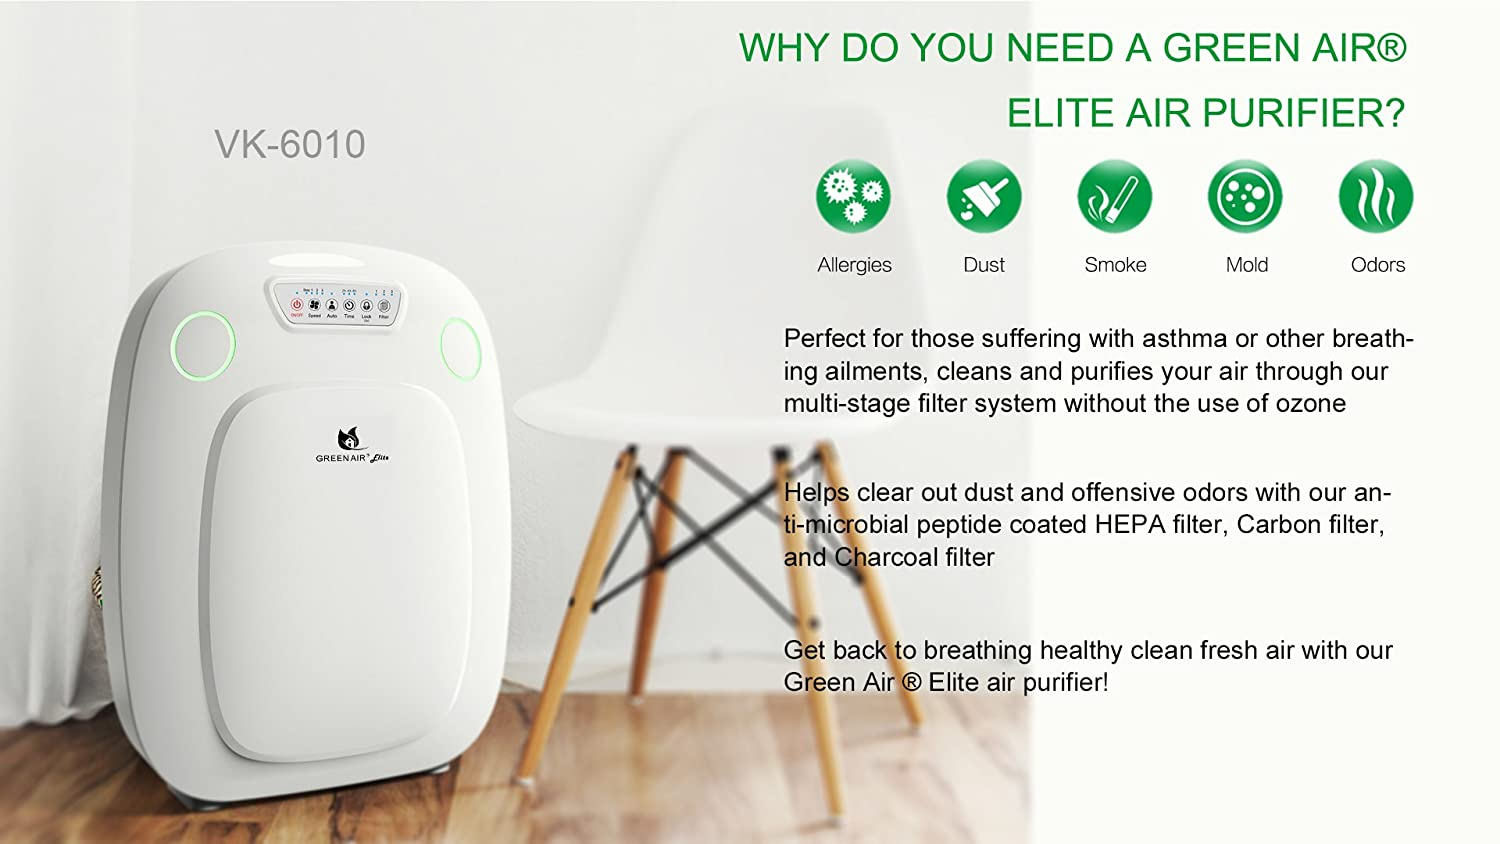 Elite HEPA and Odor Fighting Filter Air Purifier with IonCluster Technology for Large Rooms, HEPA, Carbon, and Charcoal filter for allergies, pets, odors, mold, dust, germs, smoke, 600 sq ft